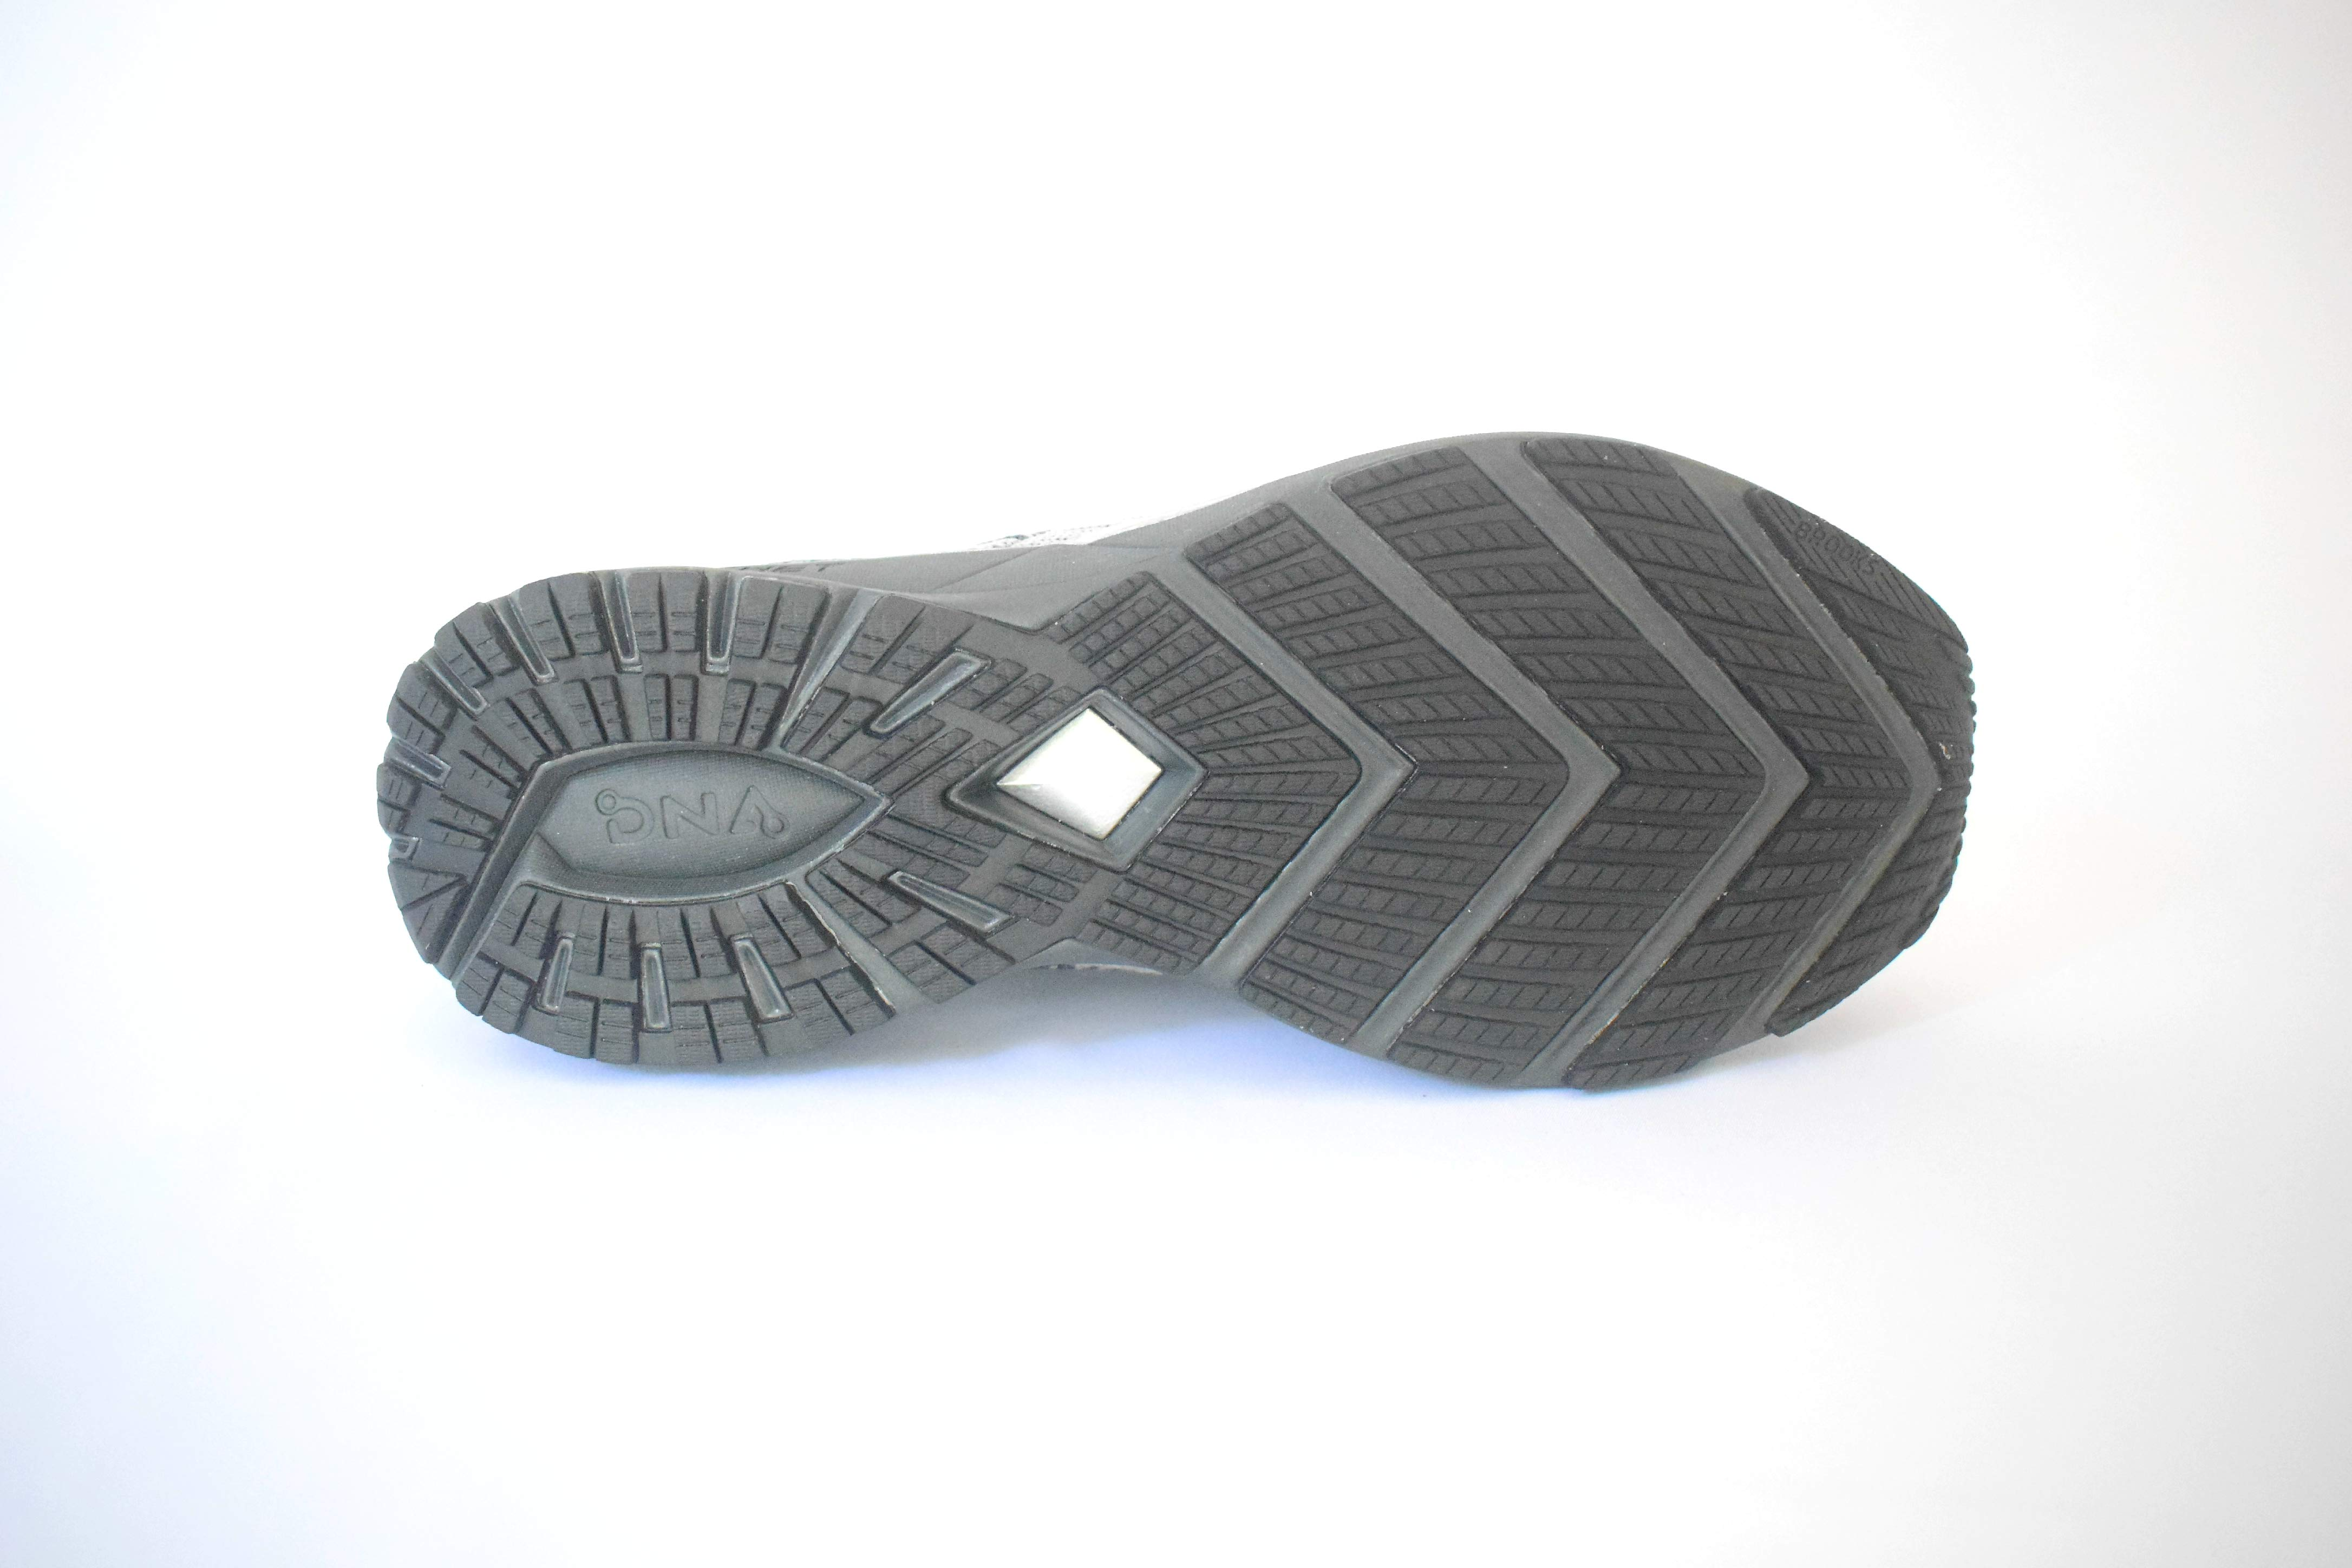 379f7ff2200 Flexibility and durability are two things runners can expect from the  Brooks Ricochet. The outsole is mostly made up of a durable rubber material.